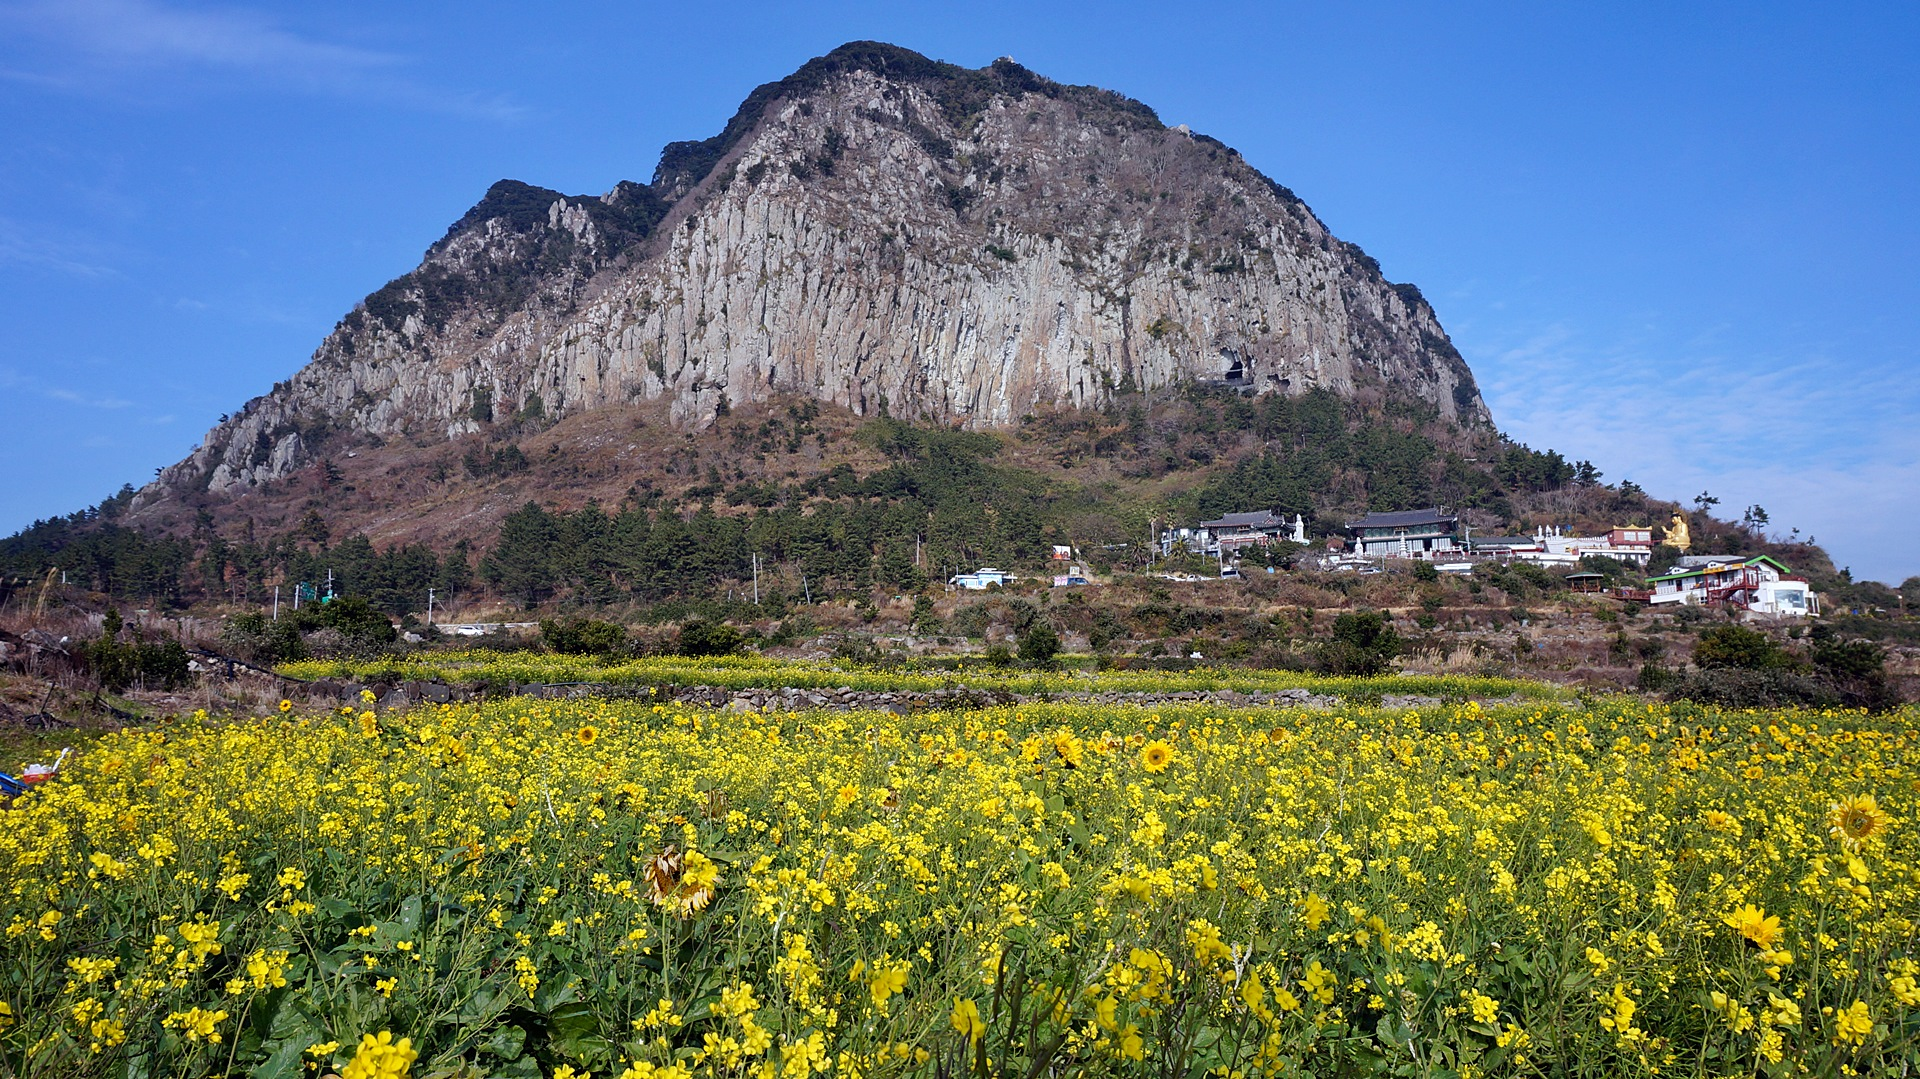 Sanbanggul-sa Sagye, VisitJeju - Your source for up-to-date travel information for Jeju ...